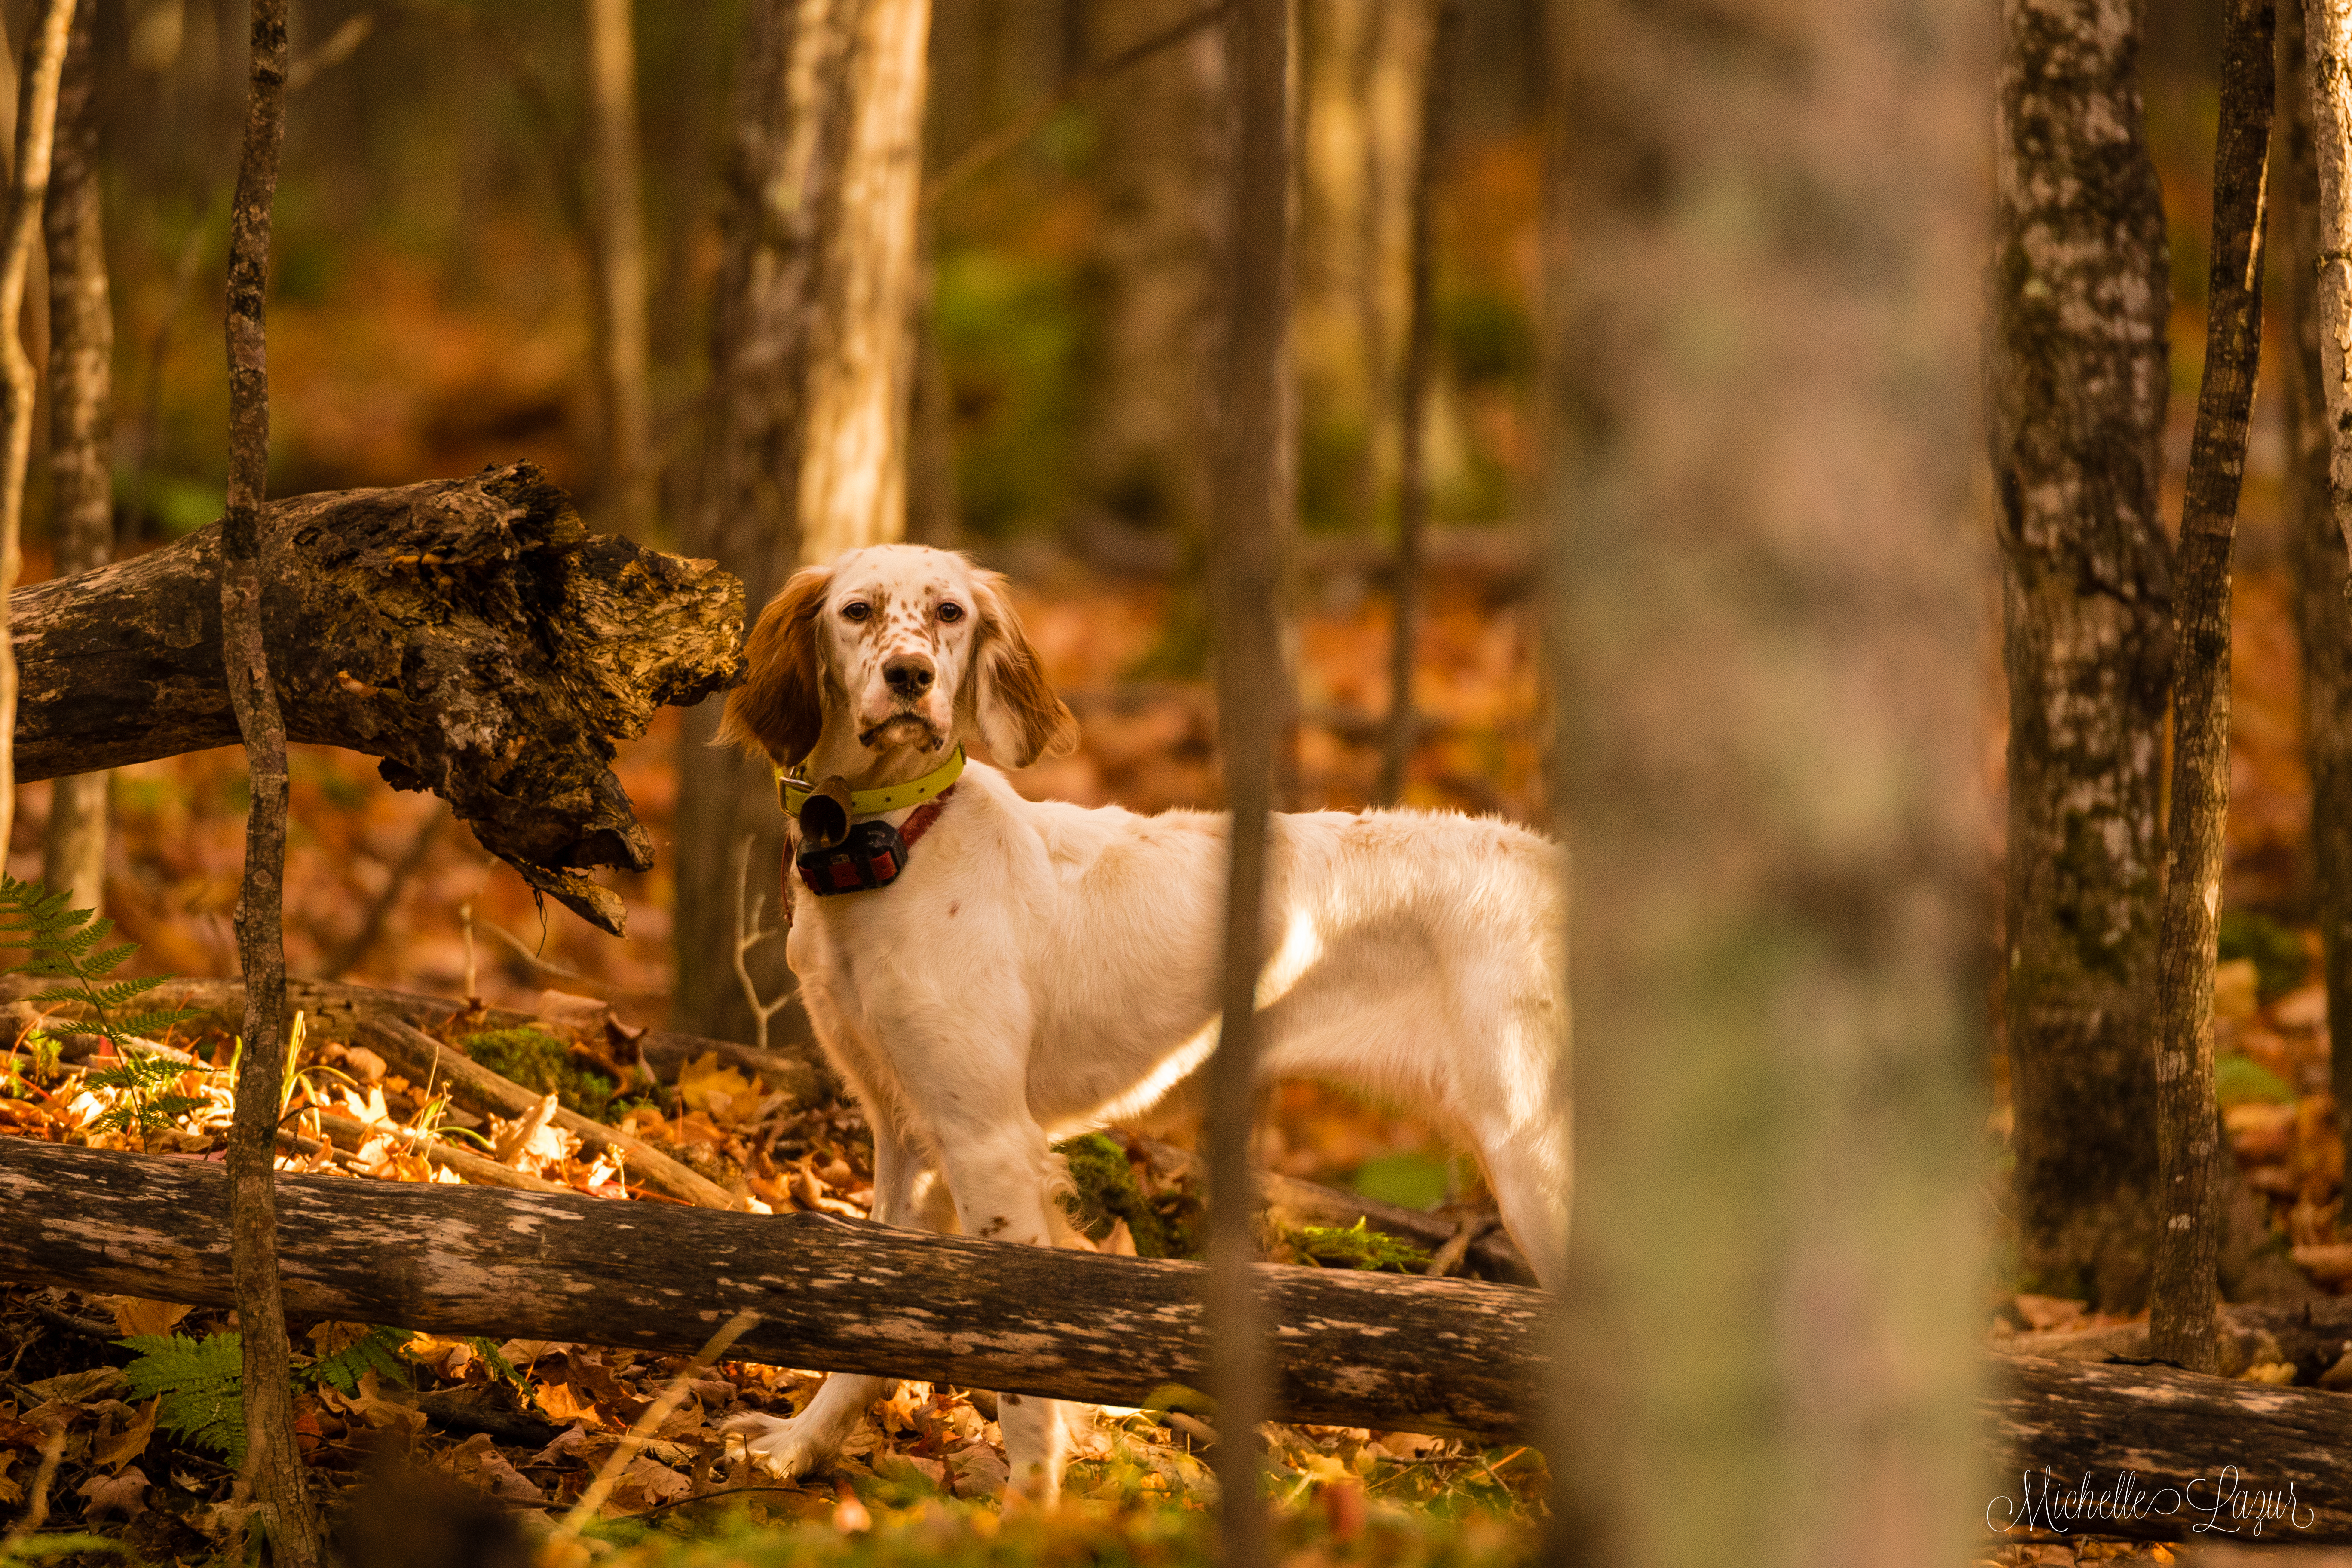 Our Llewellin Setter, Penny, at 11 months old--hunting Ruffed Grouse